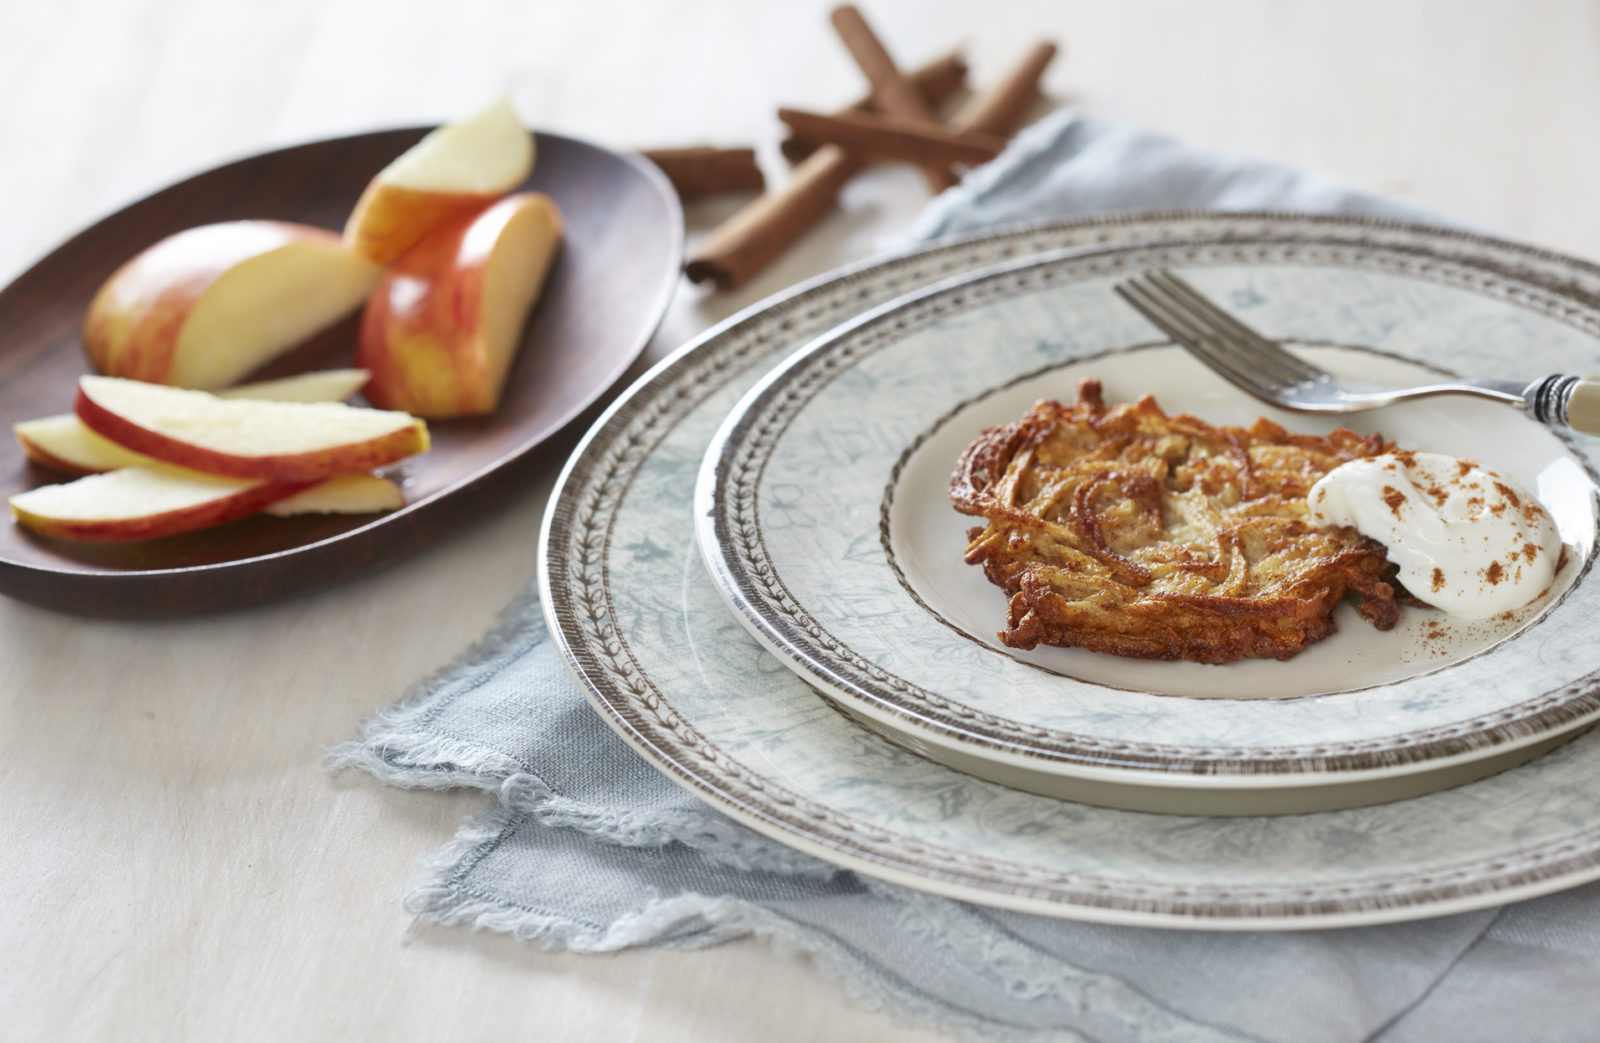 Apple-Cinnamon Dessert Latkes - Breaking Matzo